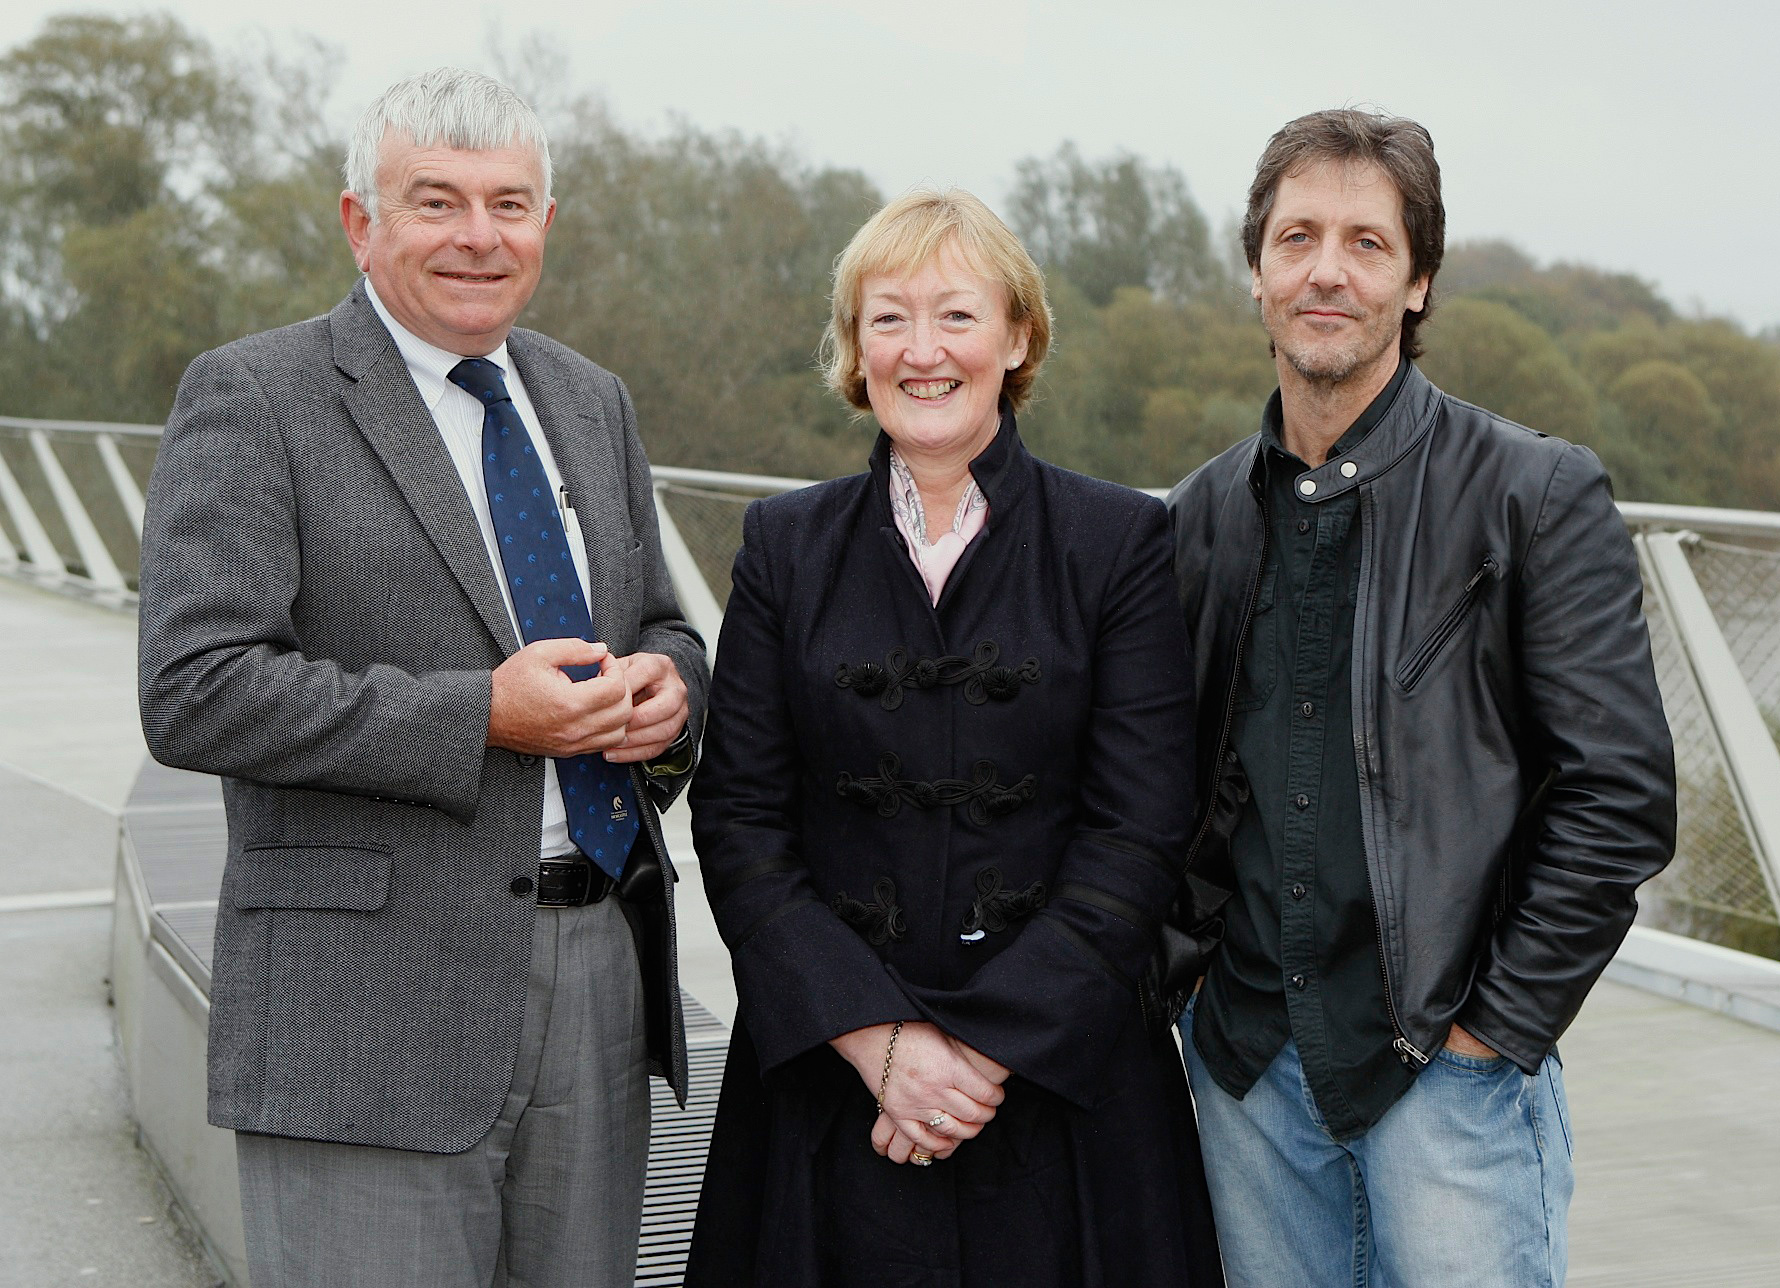 (left to right) University of Limerick Professor Paul Finucane, MD, Eithne Boyan, Managing Director, Lundbeck Ireland, Daniel Duffy, Fellow in the Humanities recipient